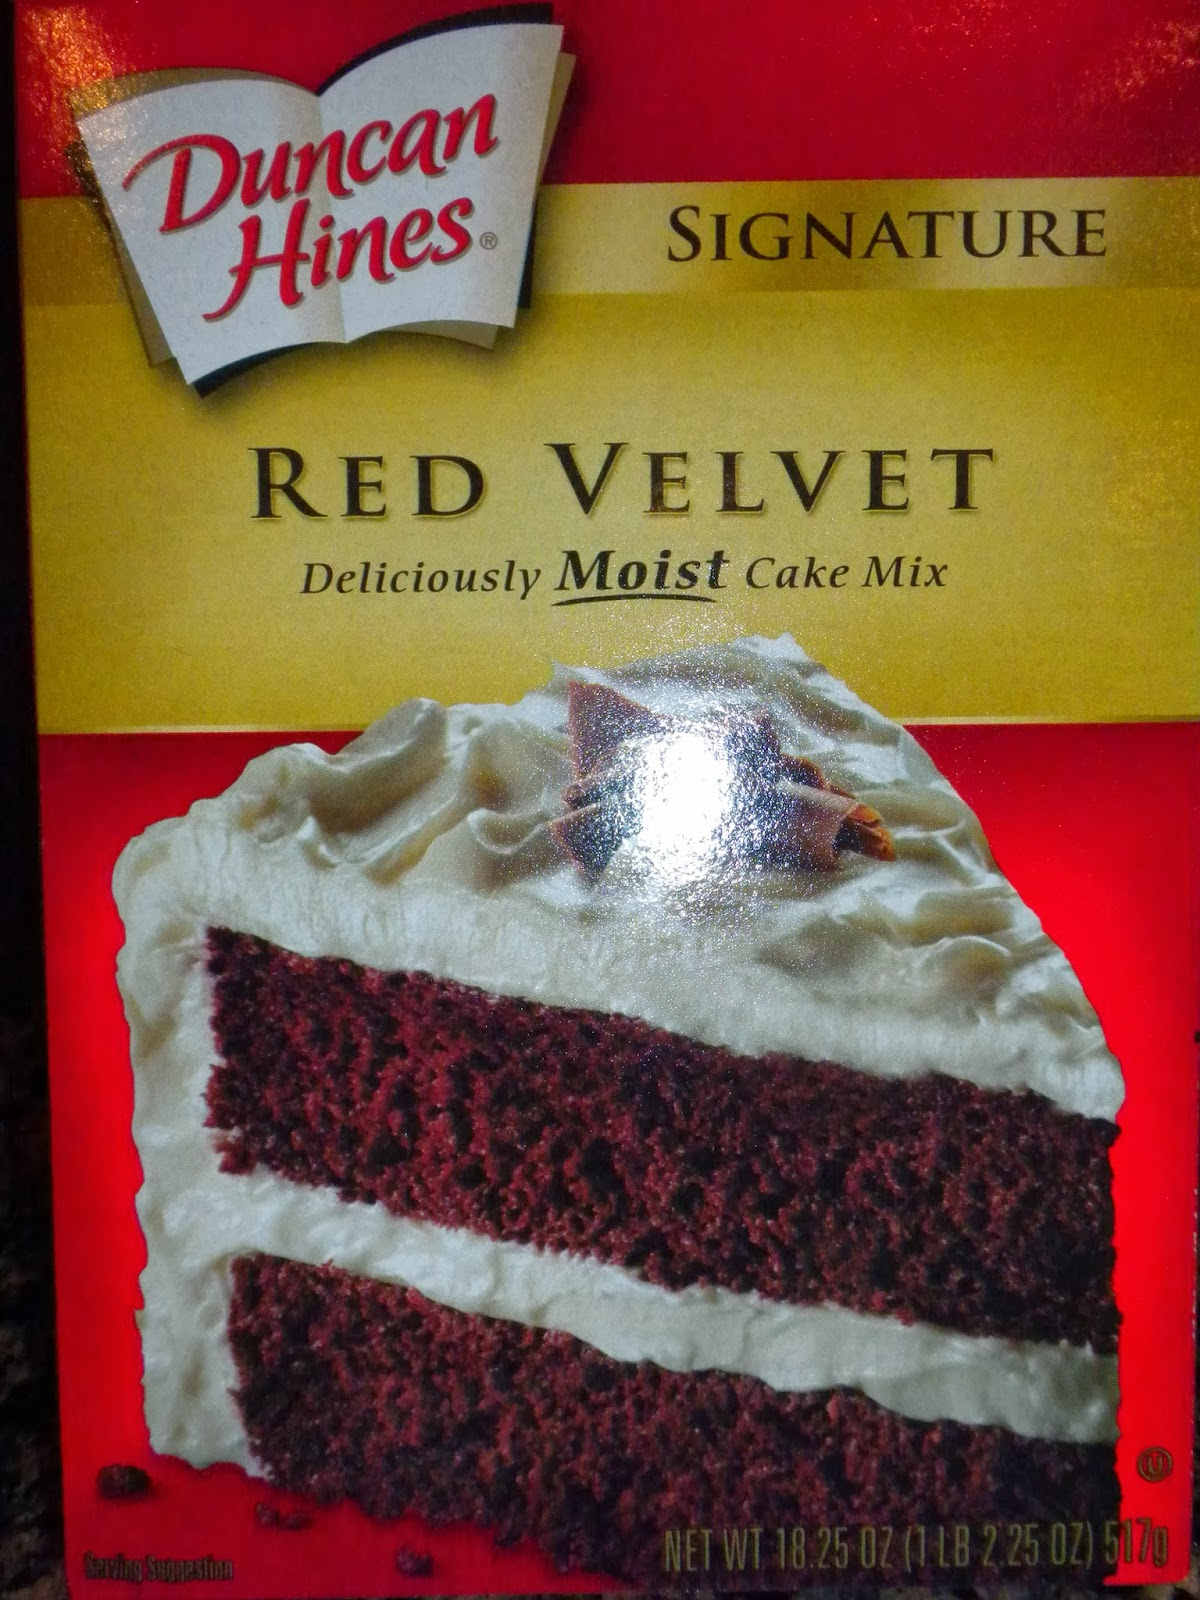 Duncan Hines Red Velvet Cake Mix as seen on Substance of Living